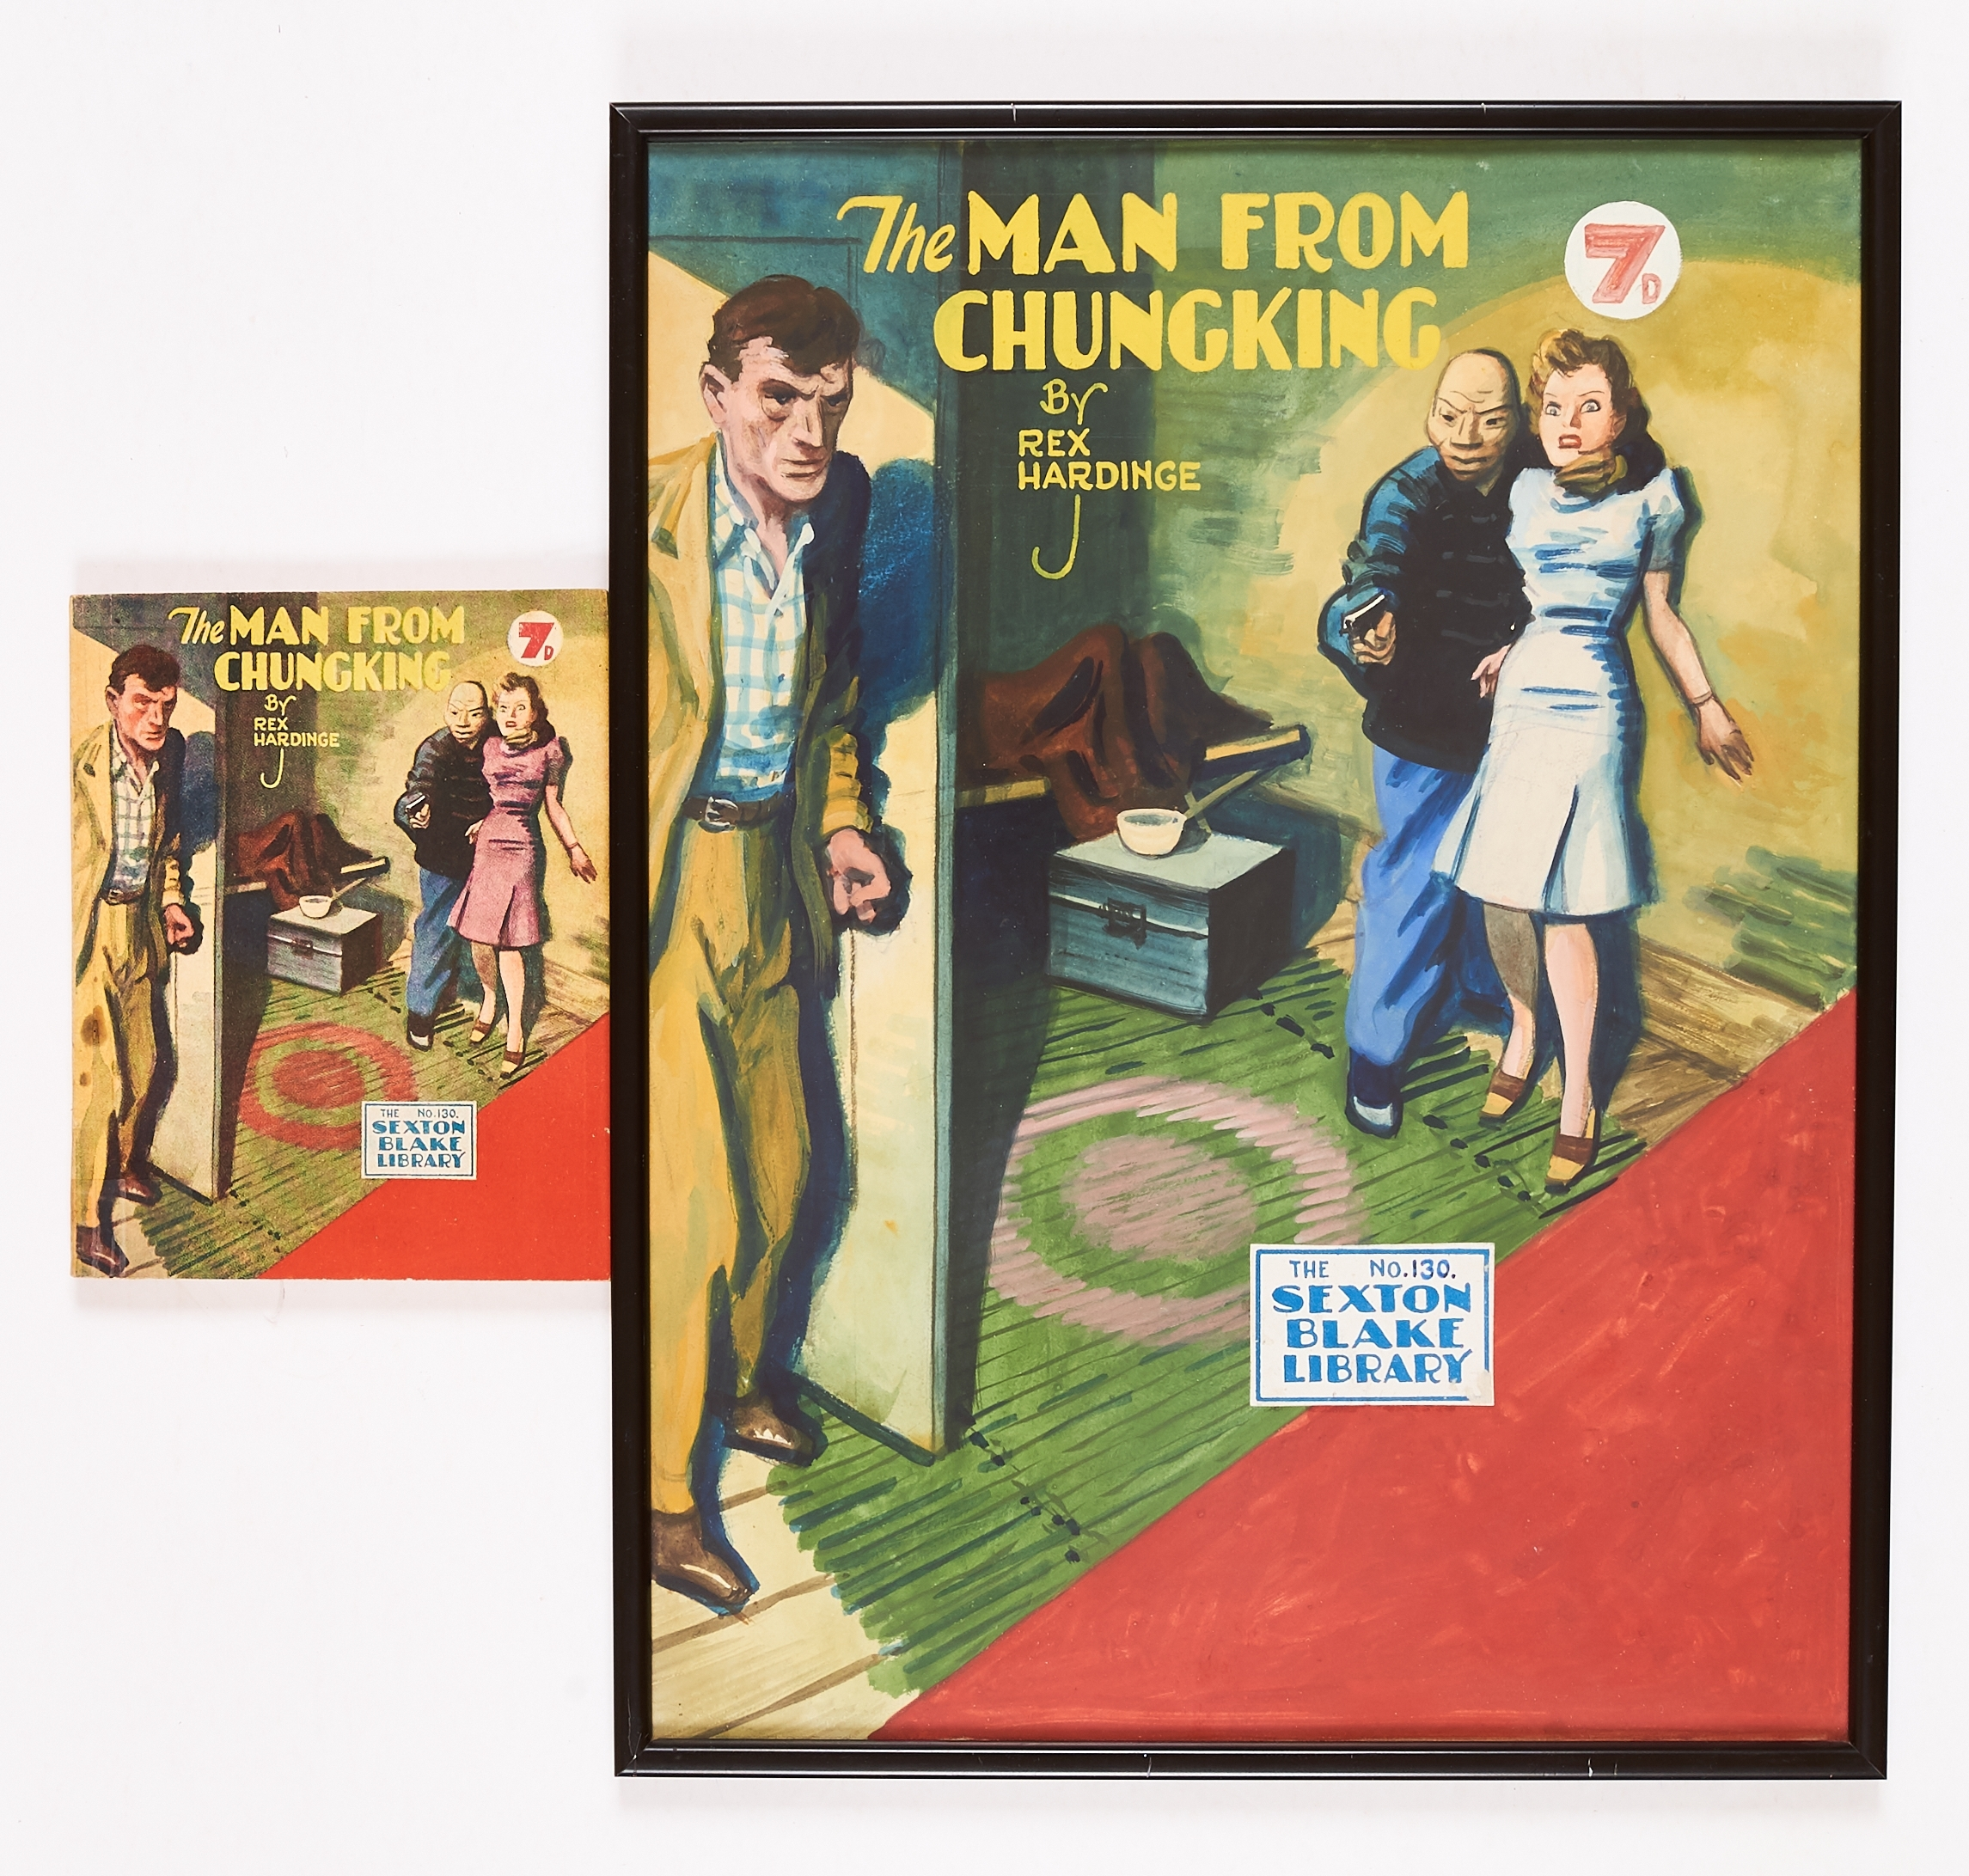 Sexton Blake/The Man from Chungking original artwork by Eric Parker for Sexton Blake Library No